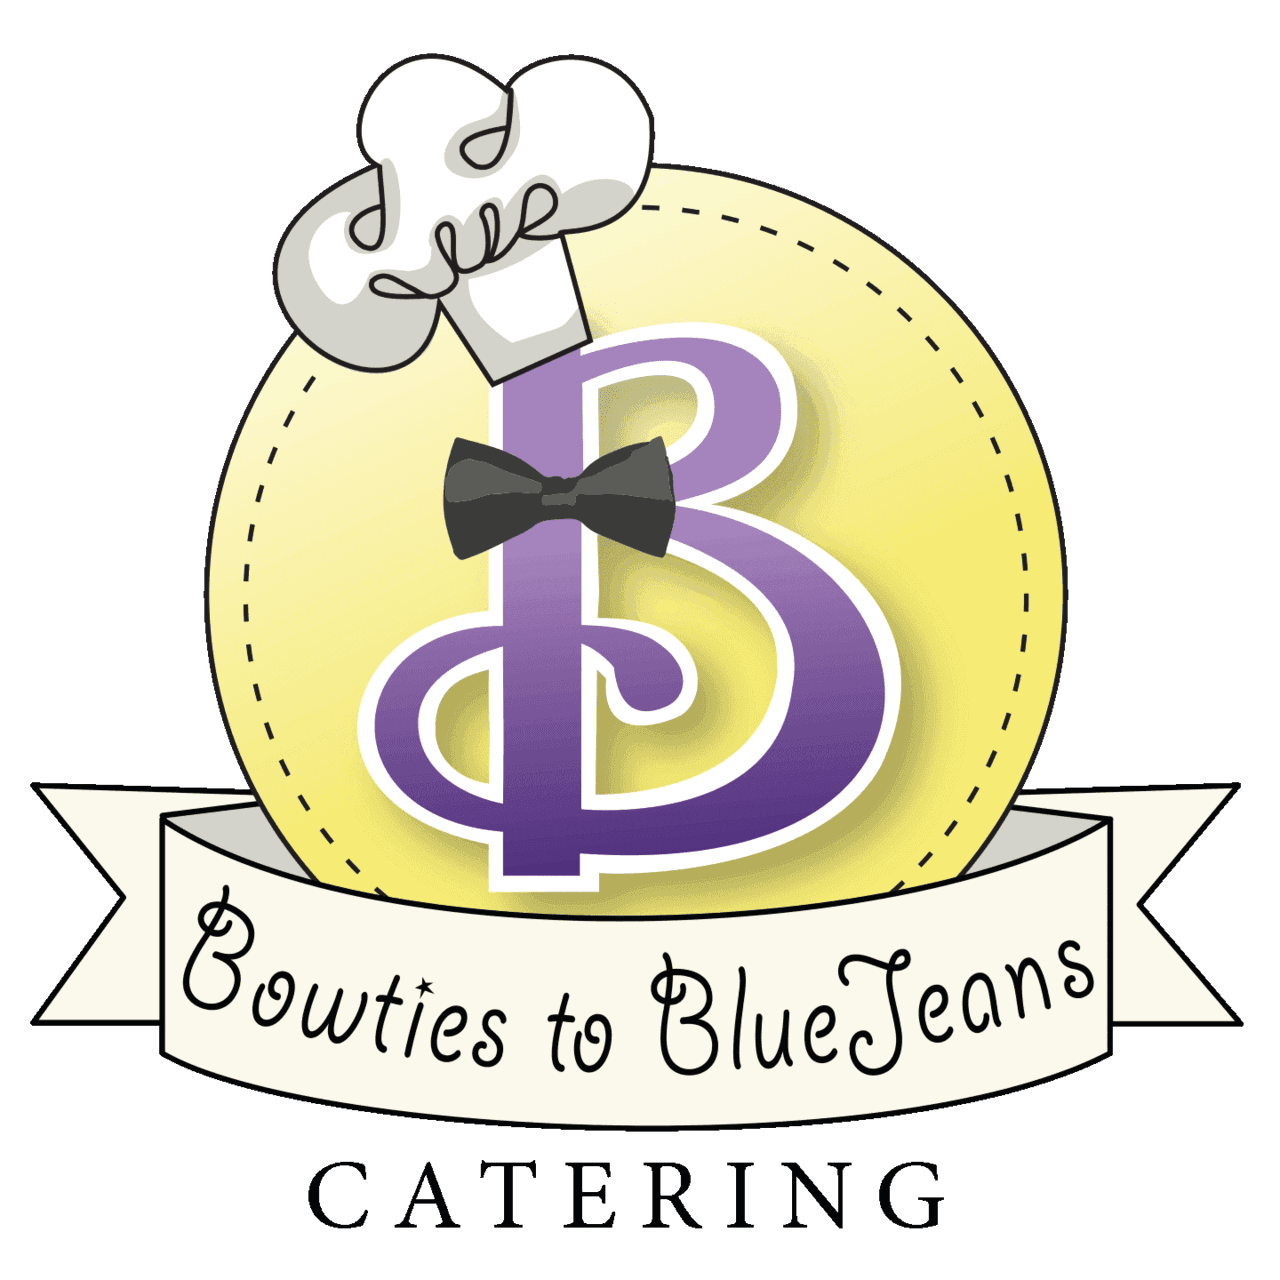 stock Ham clipart entree. Bowties to blue jeans